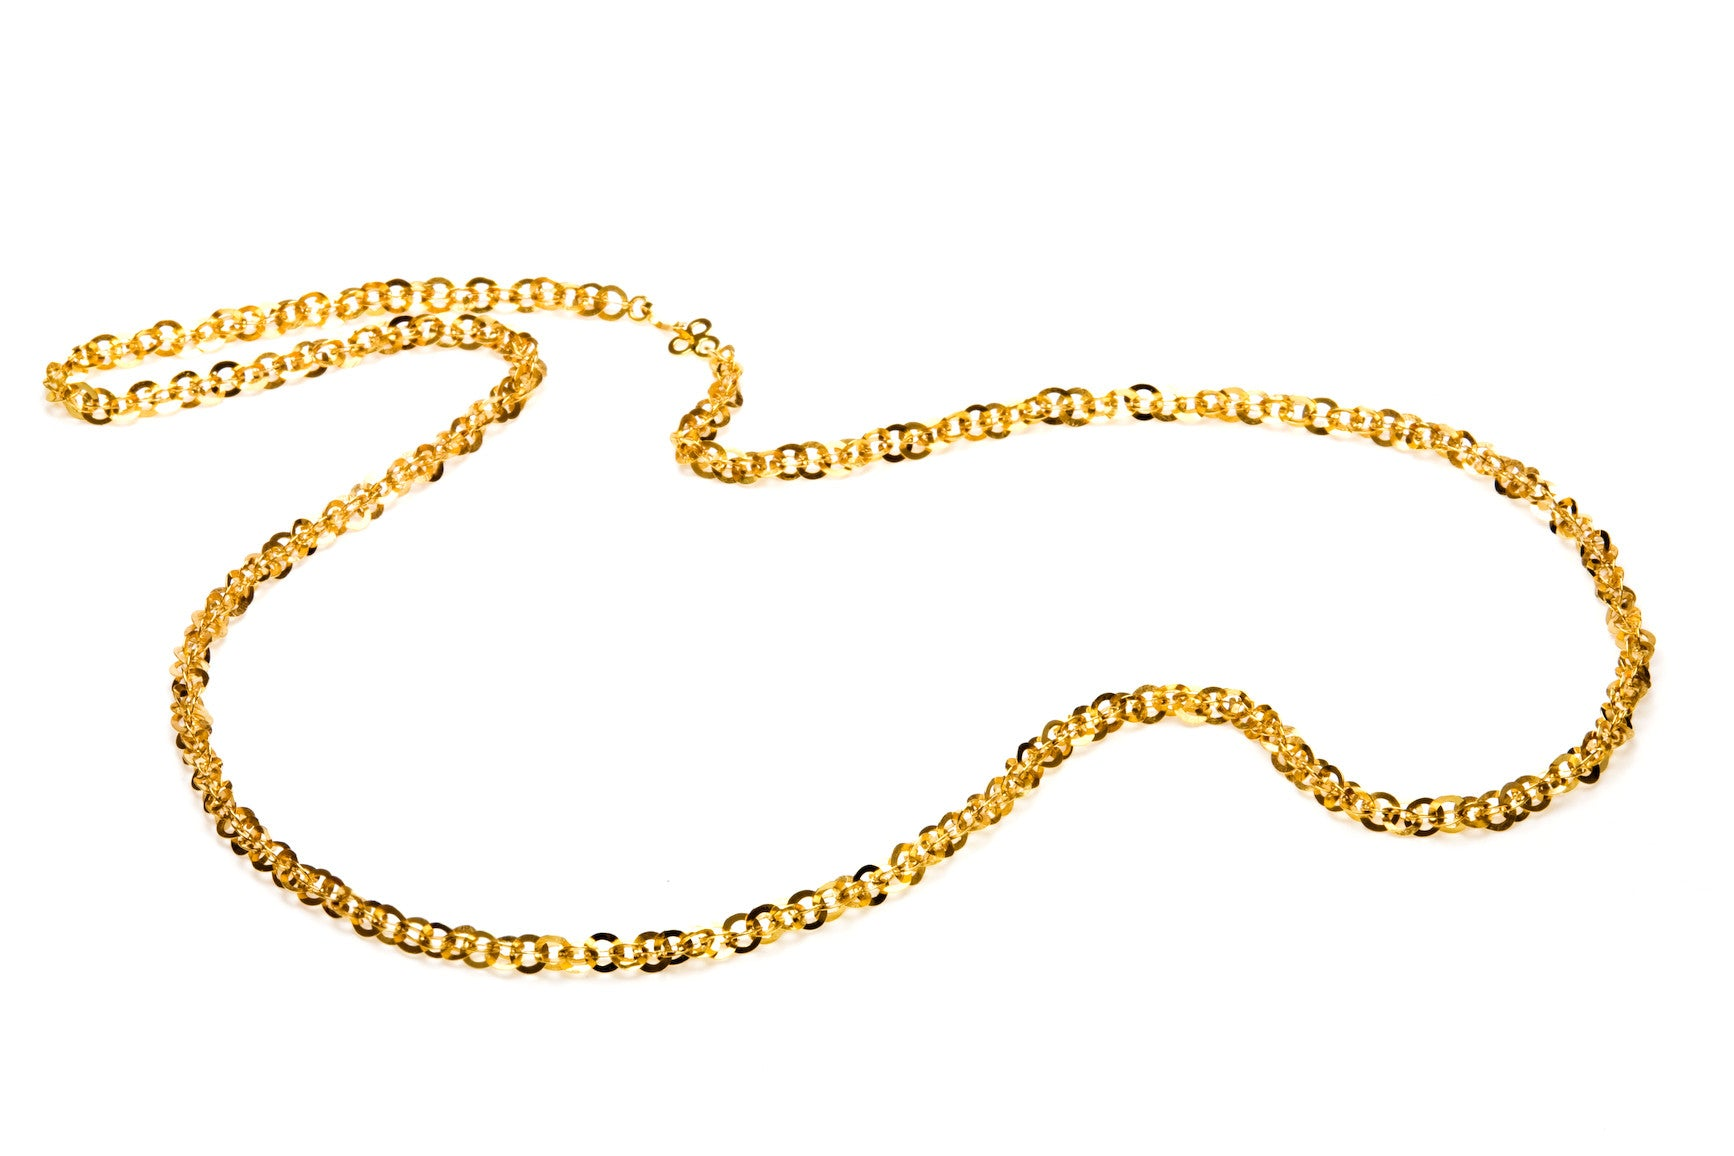 Sequin Chain Necklace in Yellow Gold